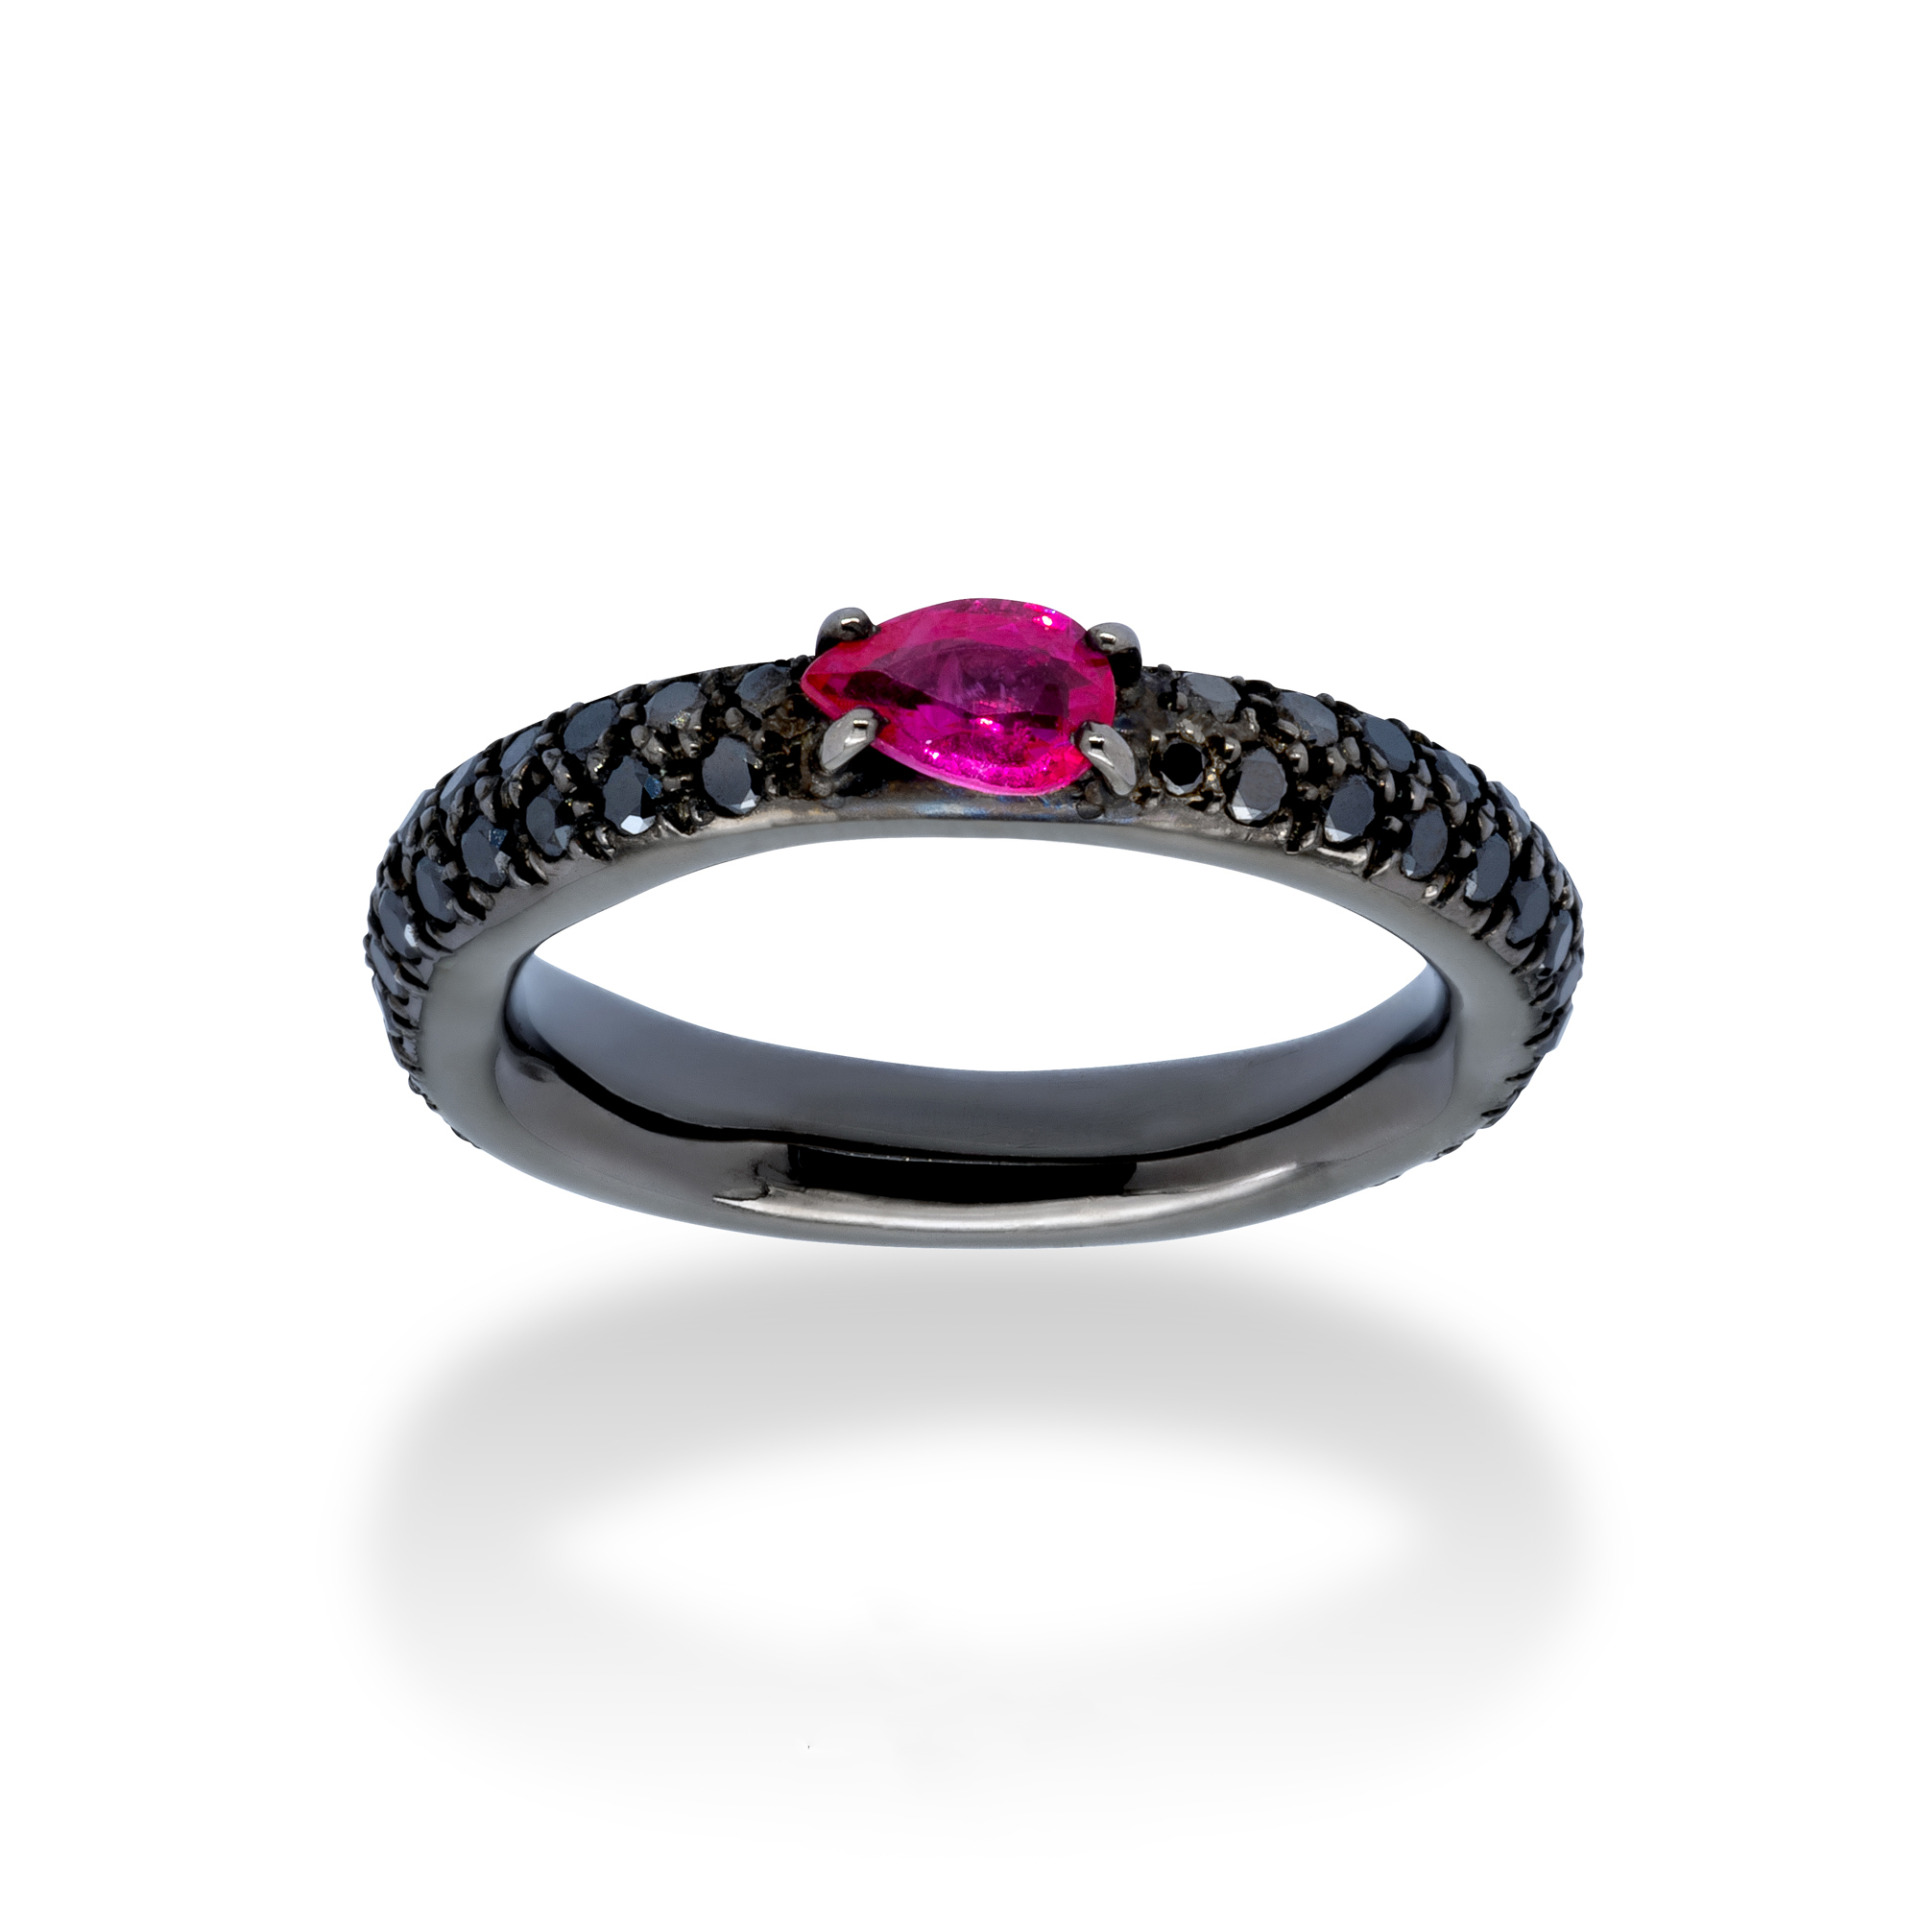 d'Avossa Ring in 18kt black gold with Ruby and Black Diamonds